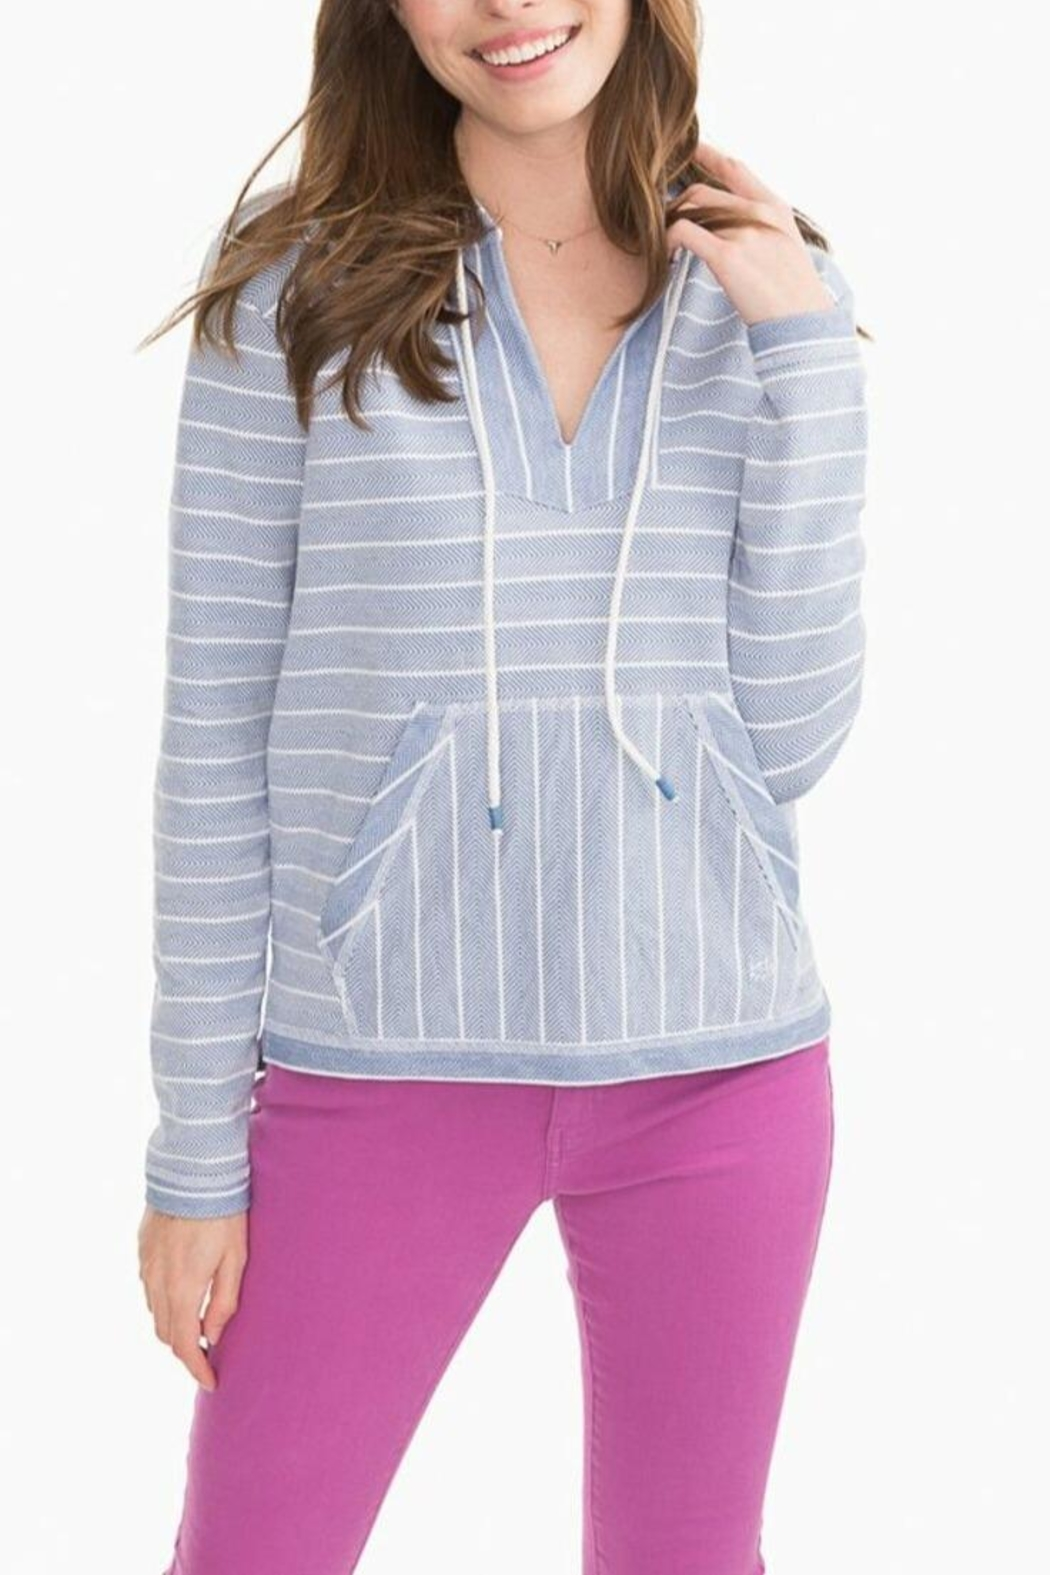 Southern Tide Paiton Striped Hoodie - Main Image